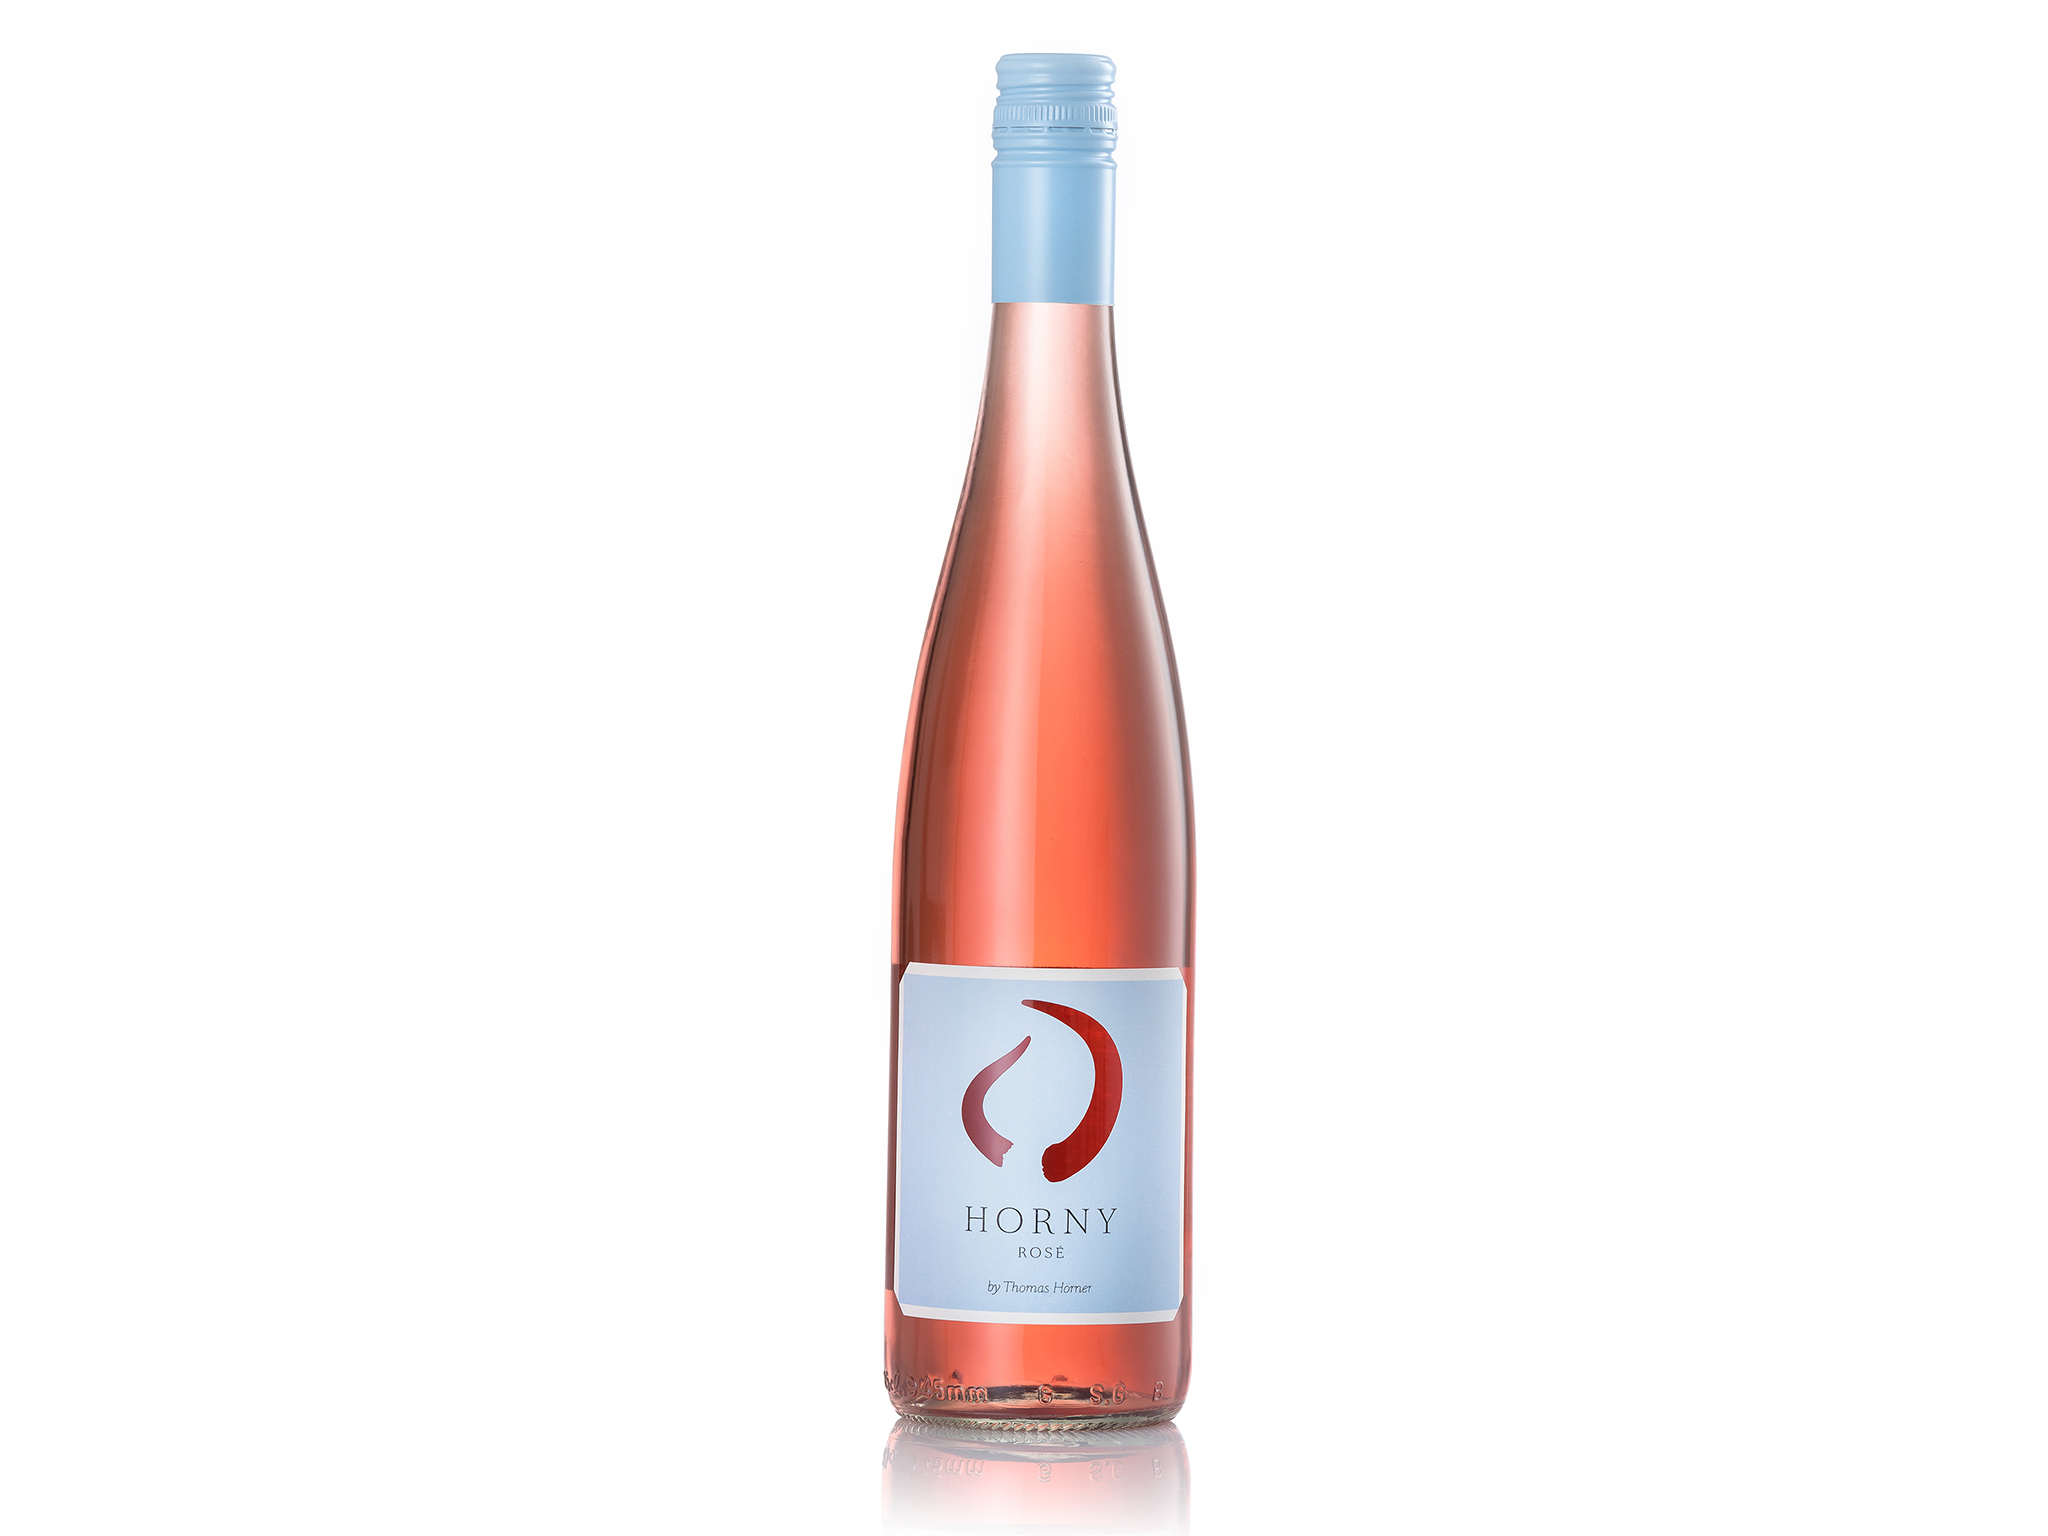 Horny Rosé from Wine Moments